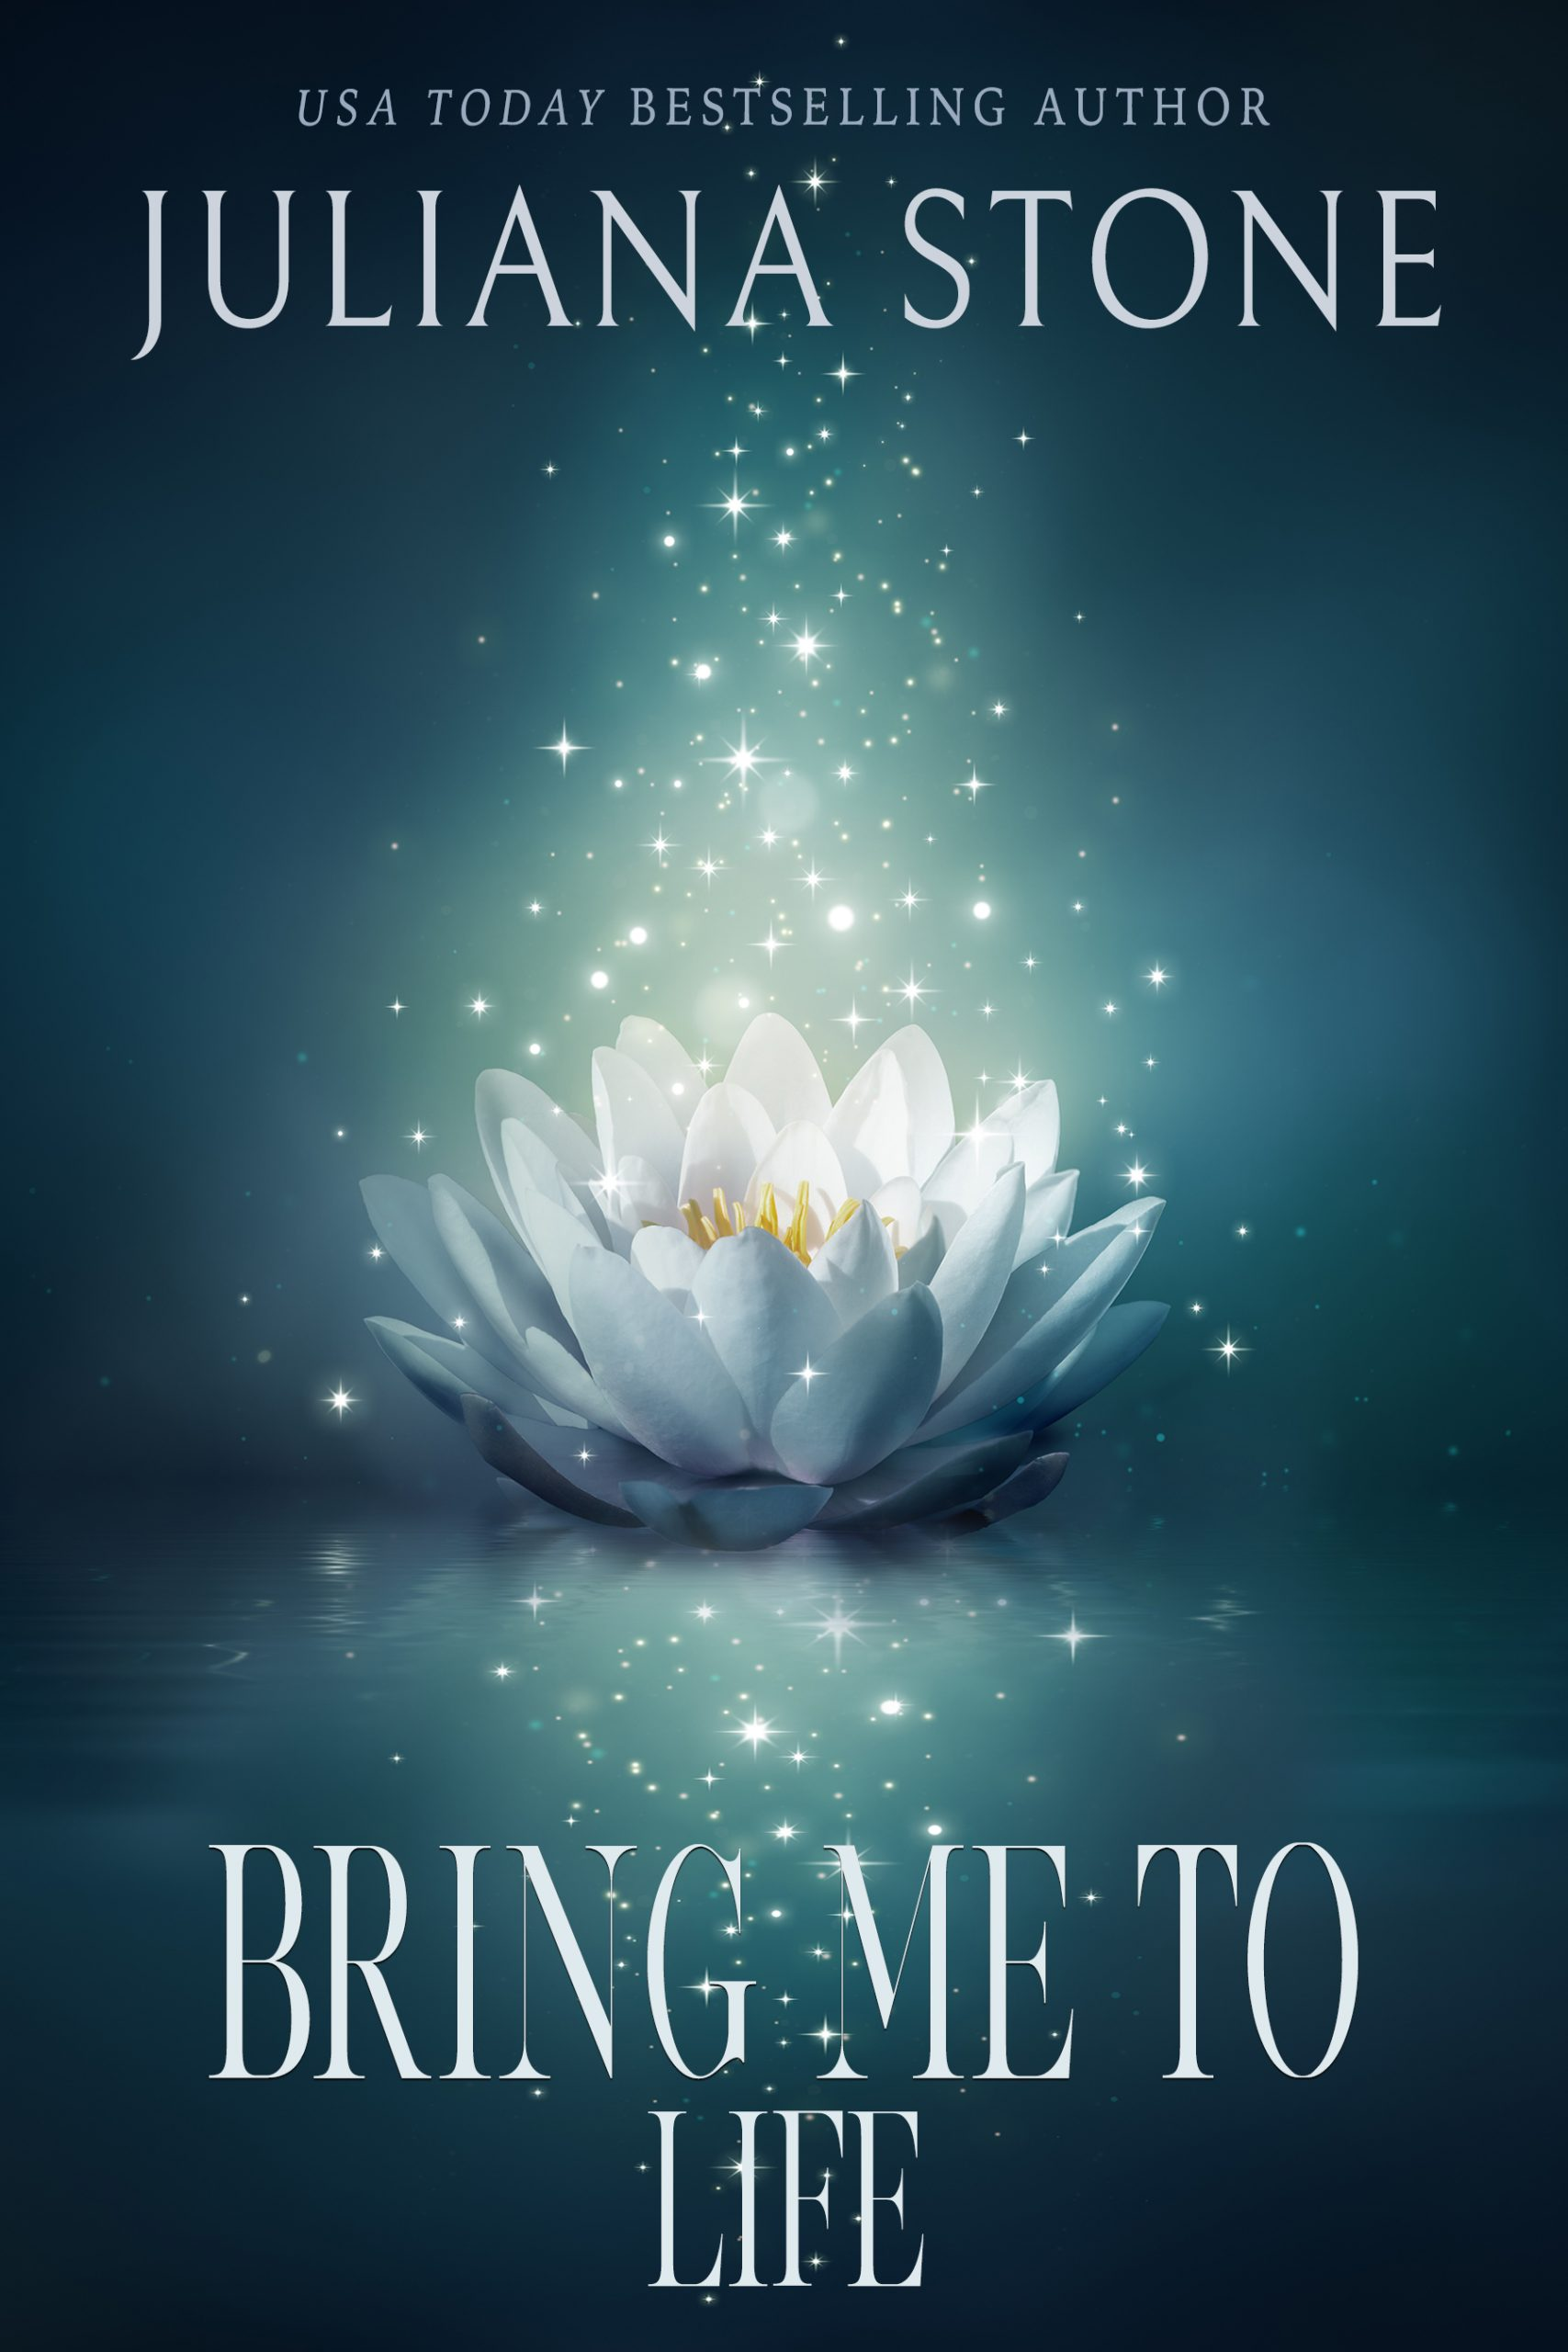 Bring Me To Life by Juliana Stone